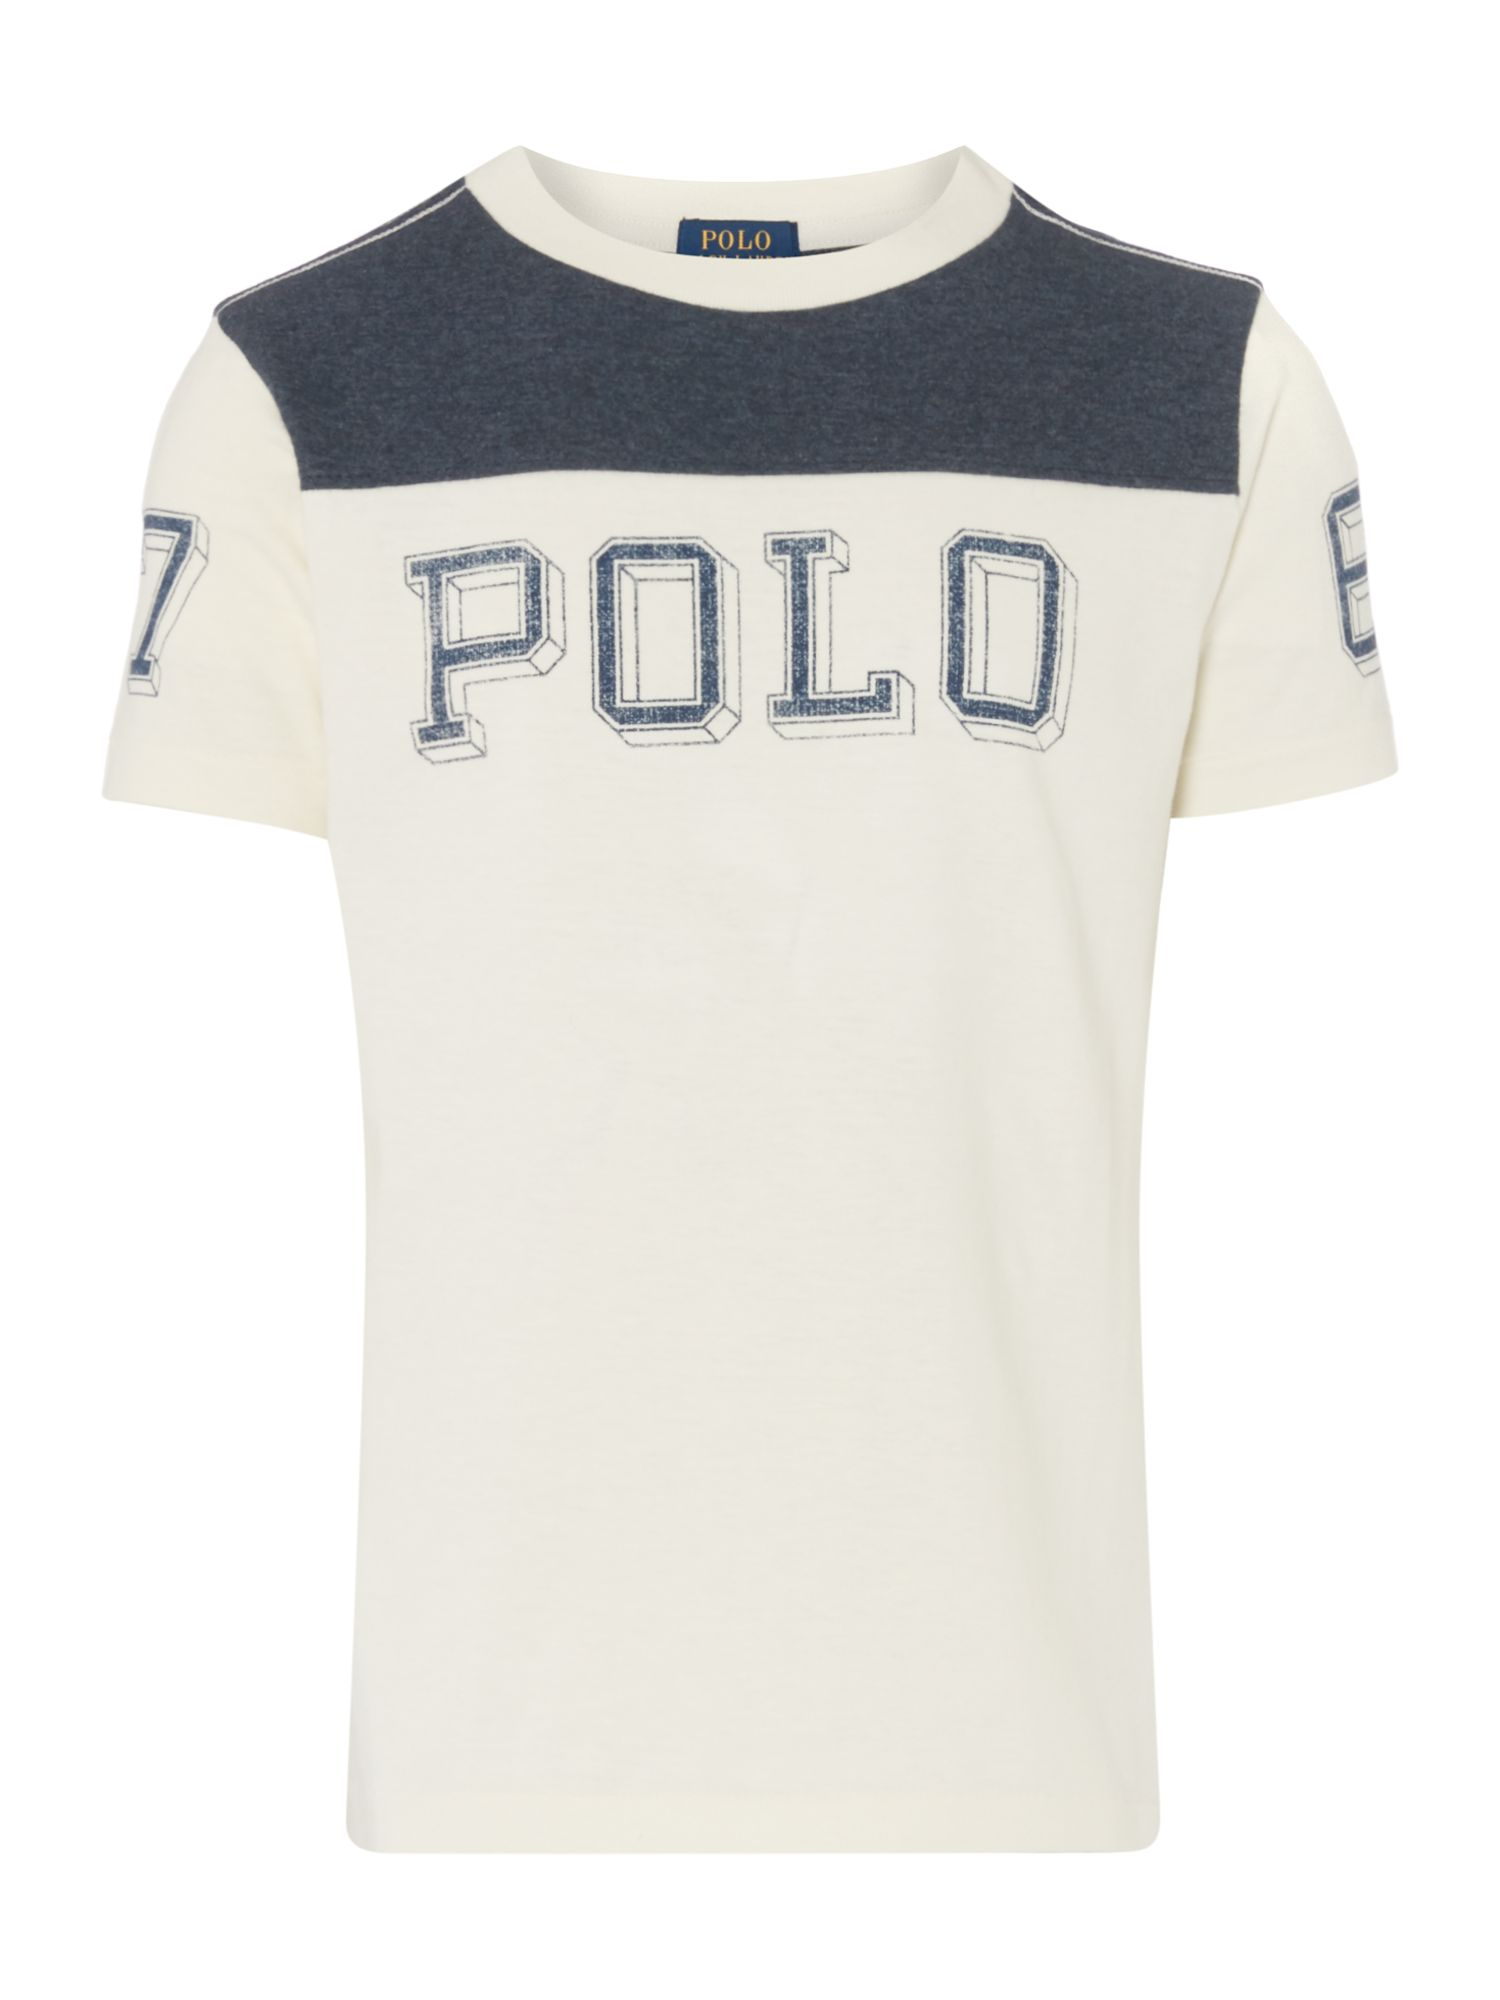 Boys Polo T Shirt House Of Fraser